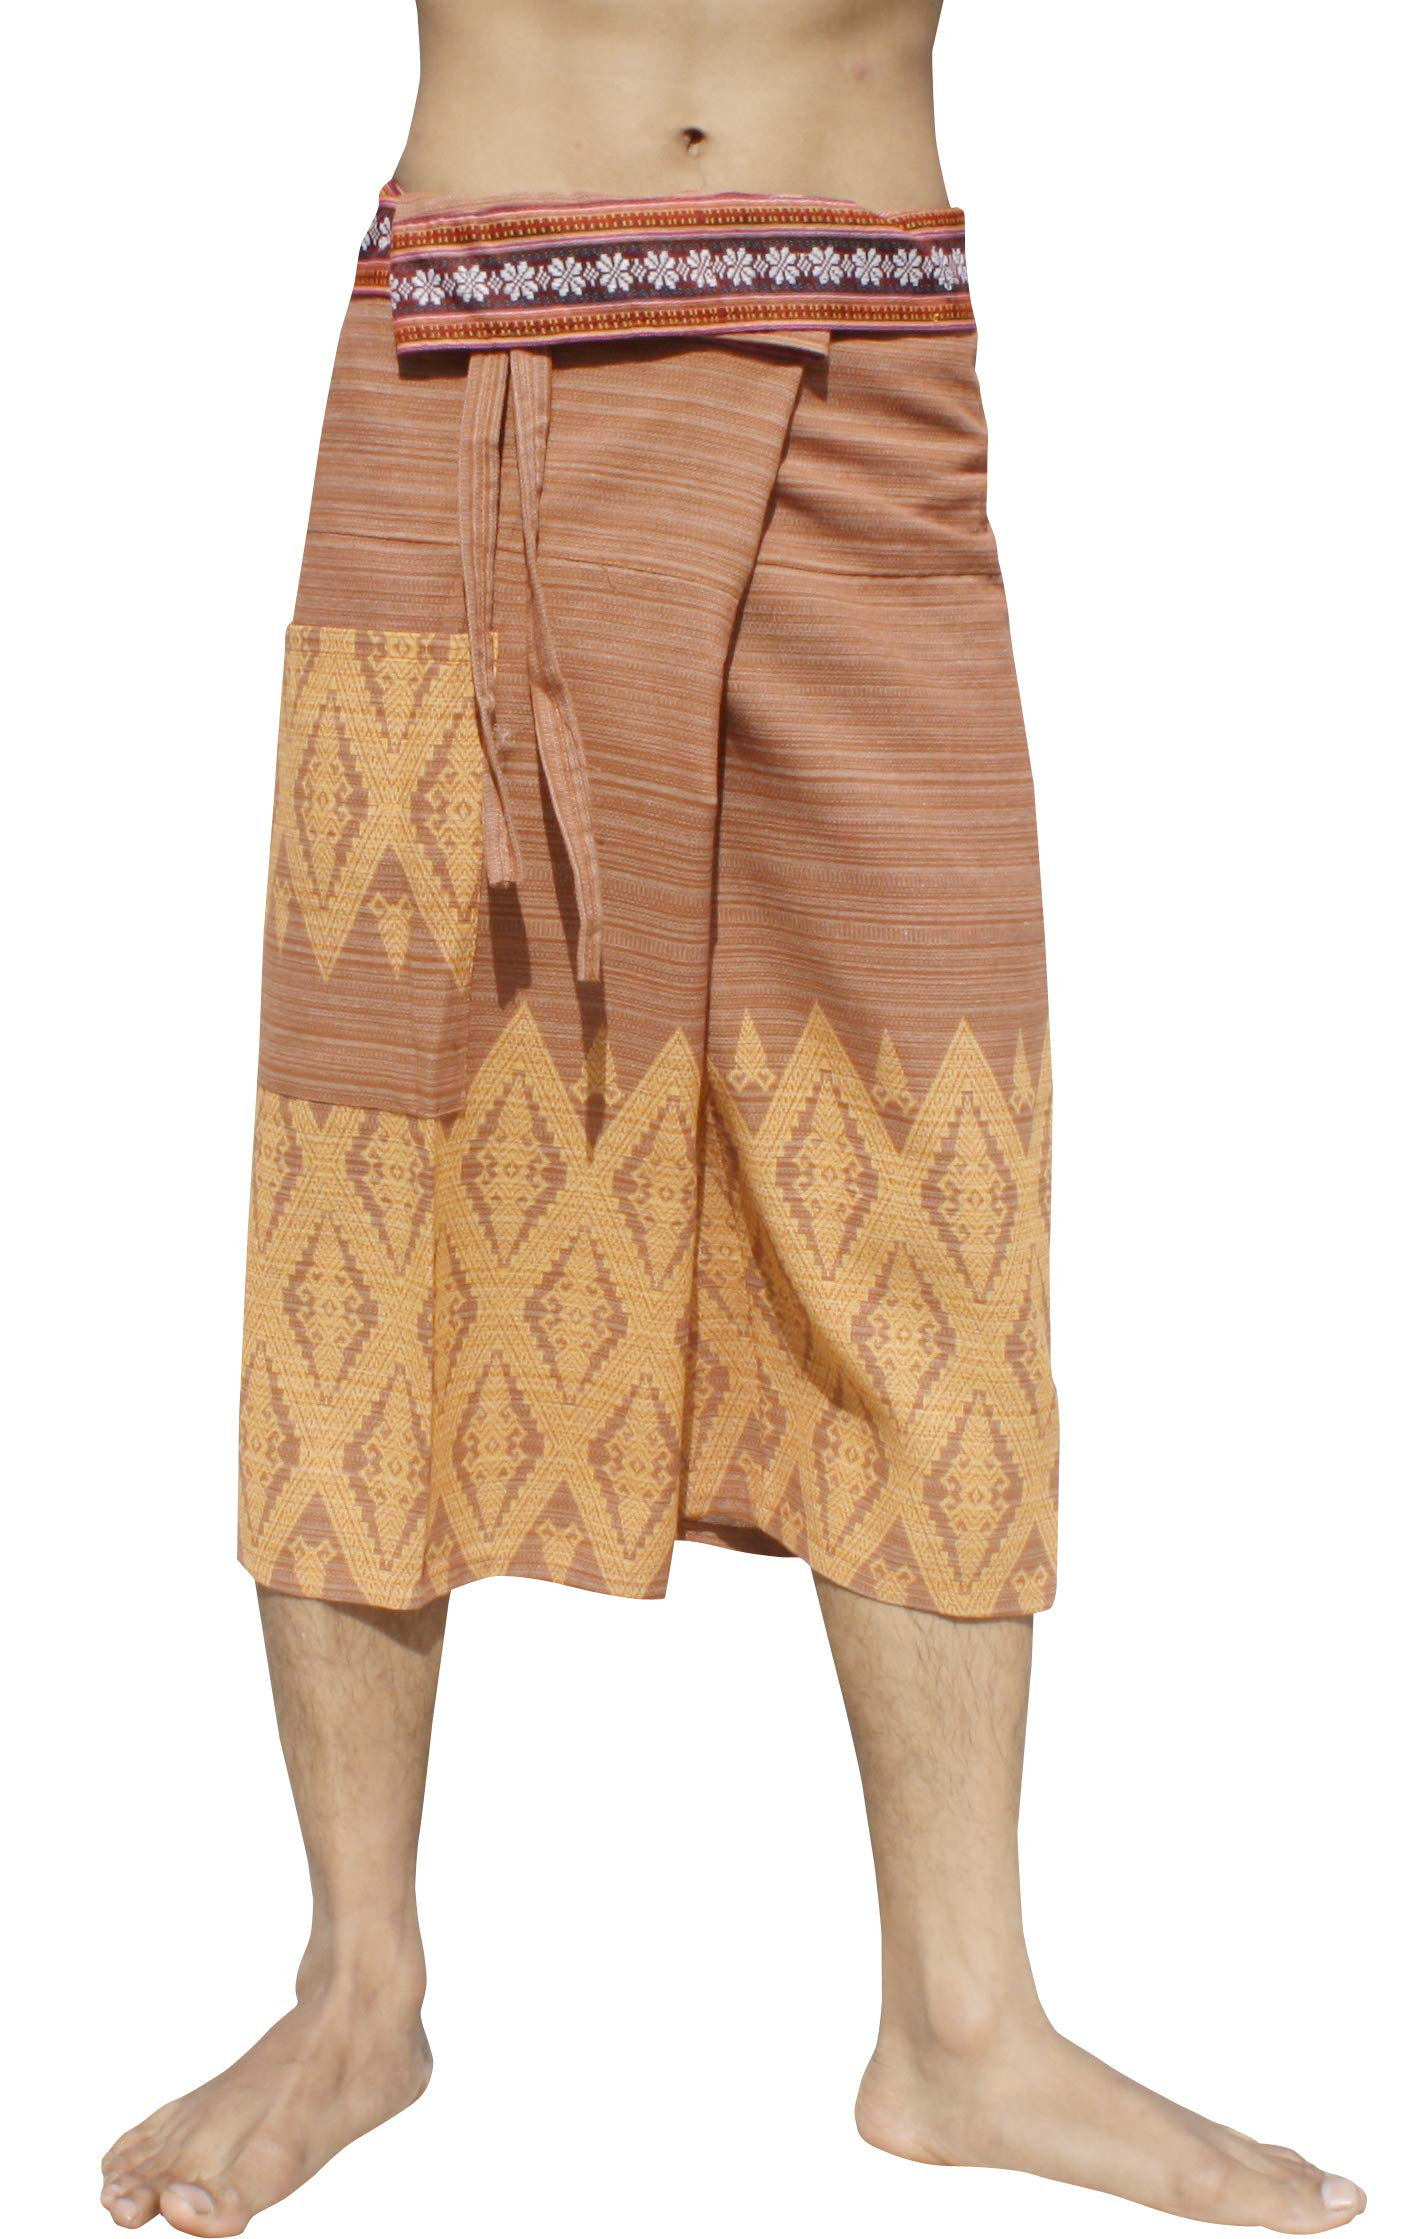 RaanPahMuang Stripe Cotton Fisherman Shorts North Thai Woodblock Artwork and Belt Art, L/XL, Bronze Brown by RaanPahMuang